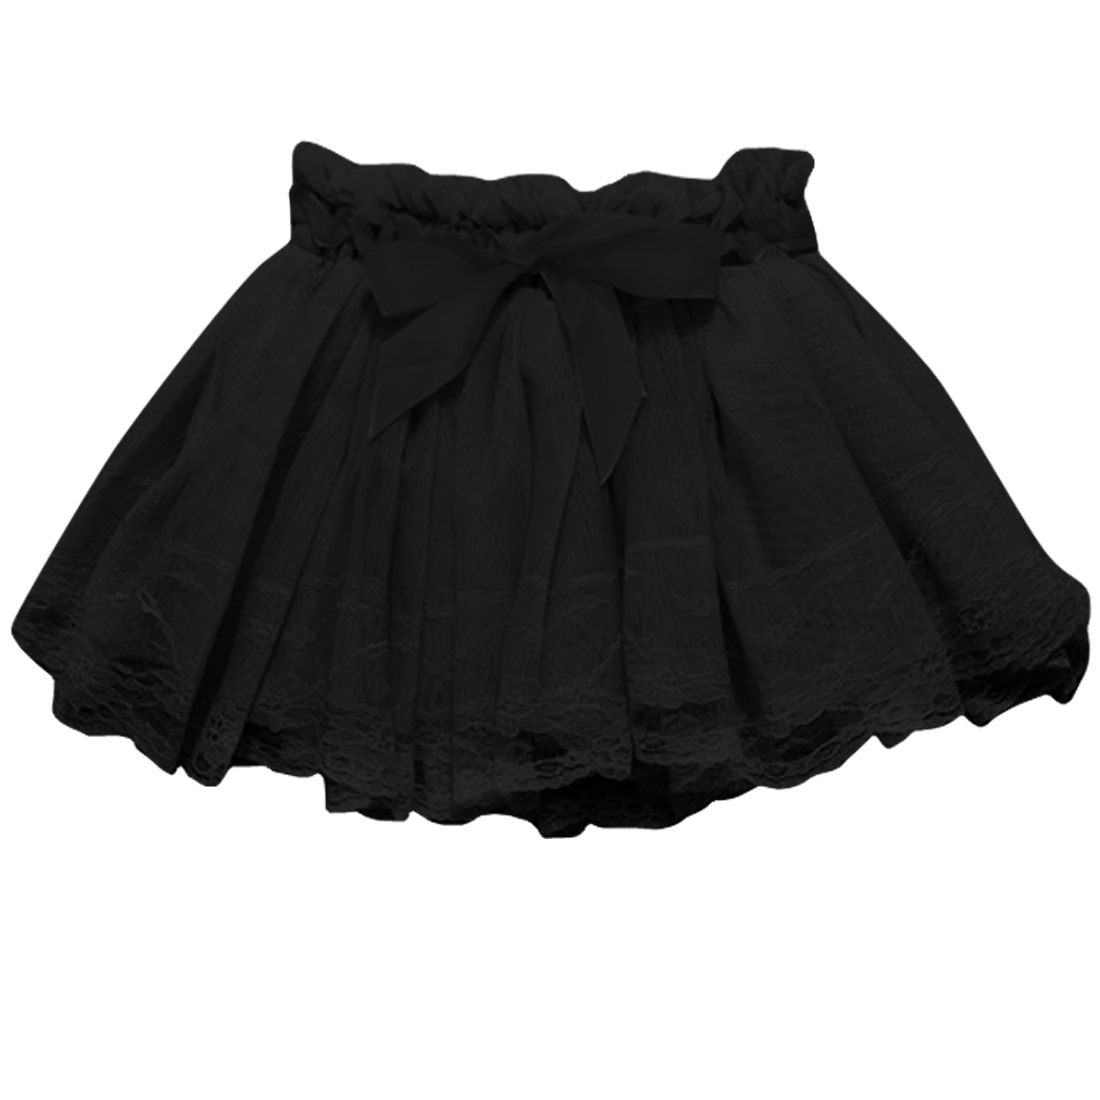 Girls Elastic Waist Solid Color Elagant Kids Skirt 4 Black